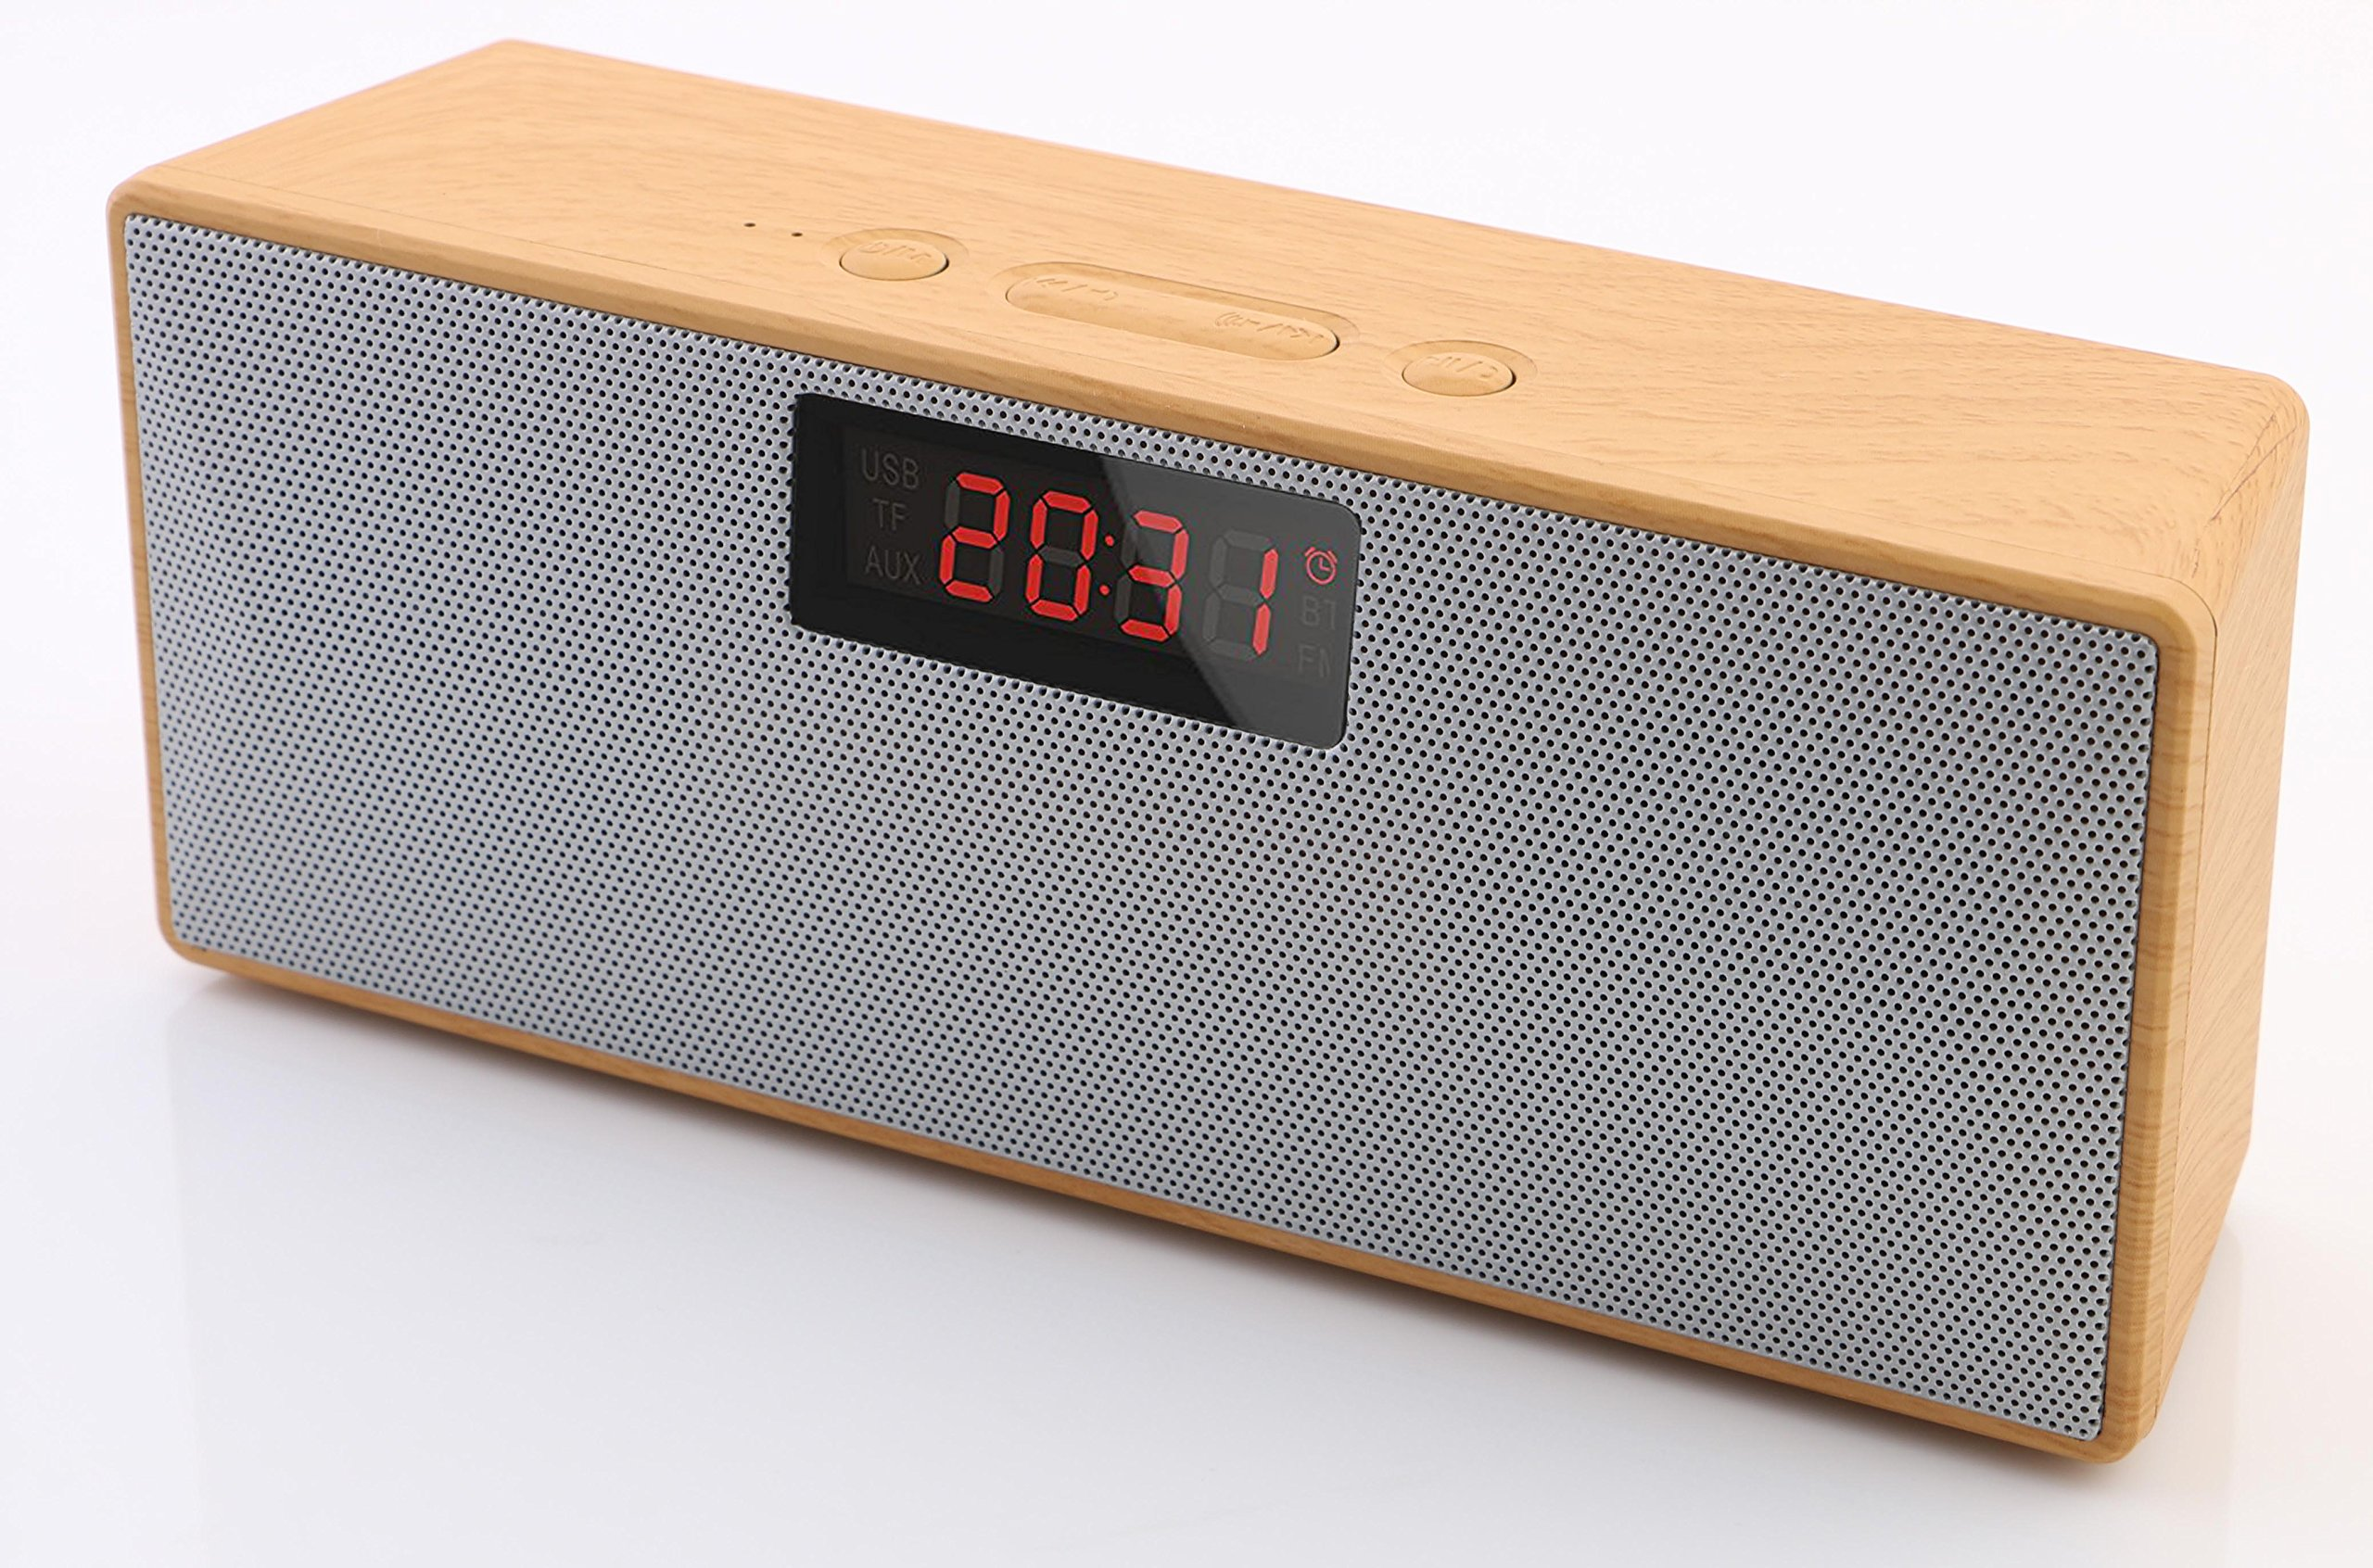 Monpos (Sport 1) Bluetooth Speaker with Built-in Mic, Dual-Driver, Alarm Clock, FM, MP3 Player (flash driver & Micro SD card) Portable Wireless Speaker with Superior Sound, Rich Bass. (Wooden)